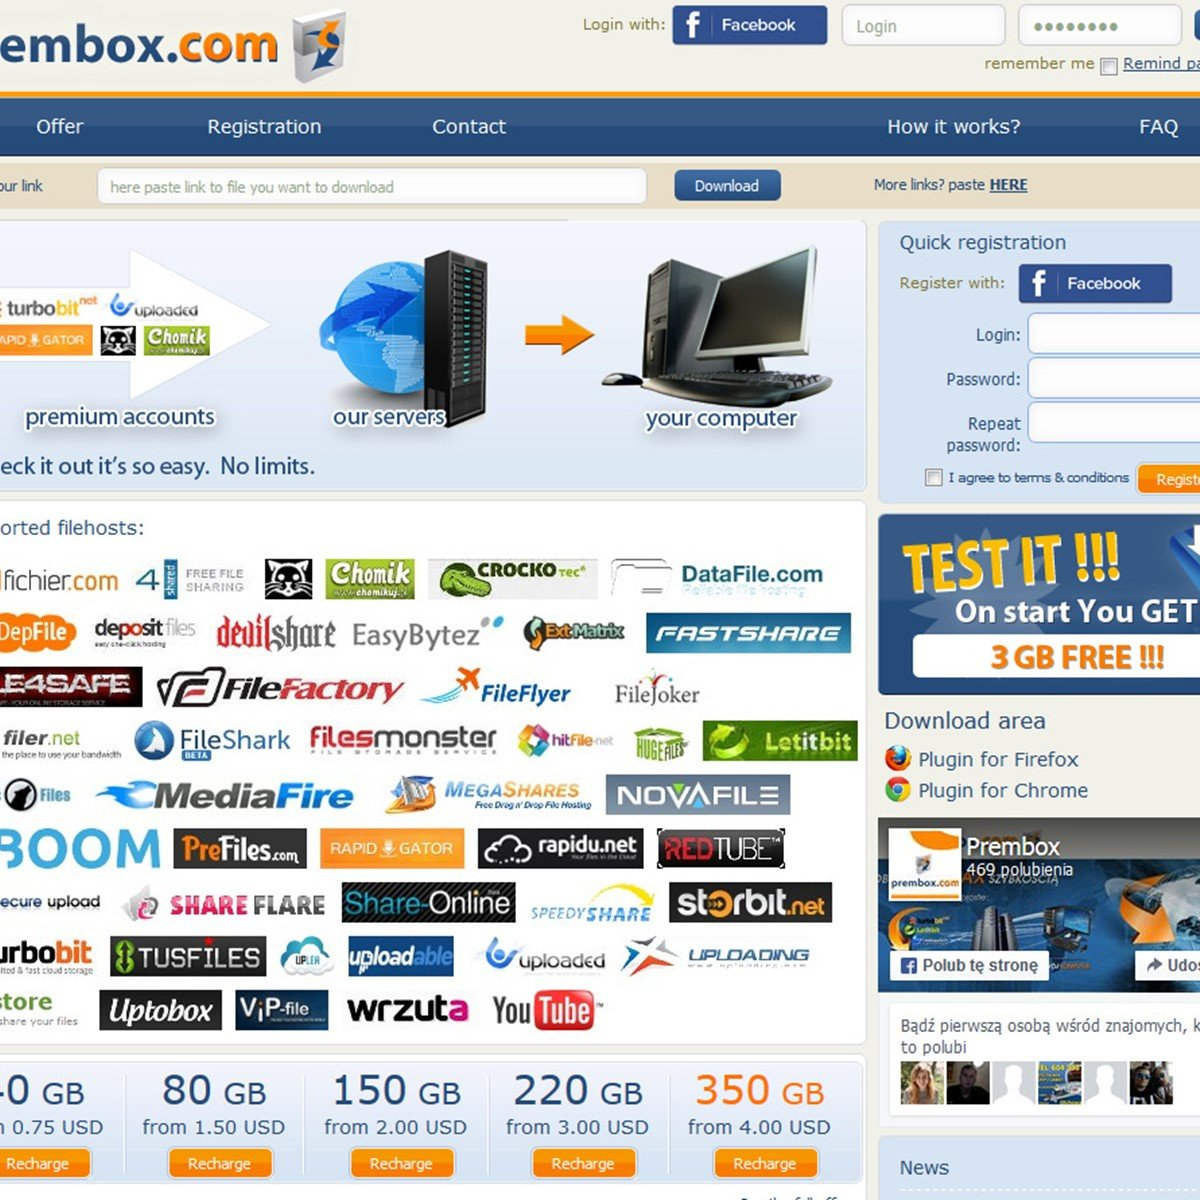 prembox com Alternatives and Similar Websites and Apps